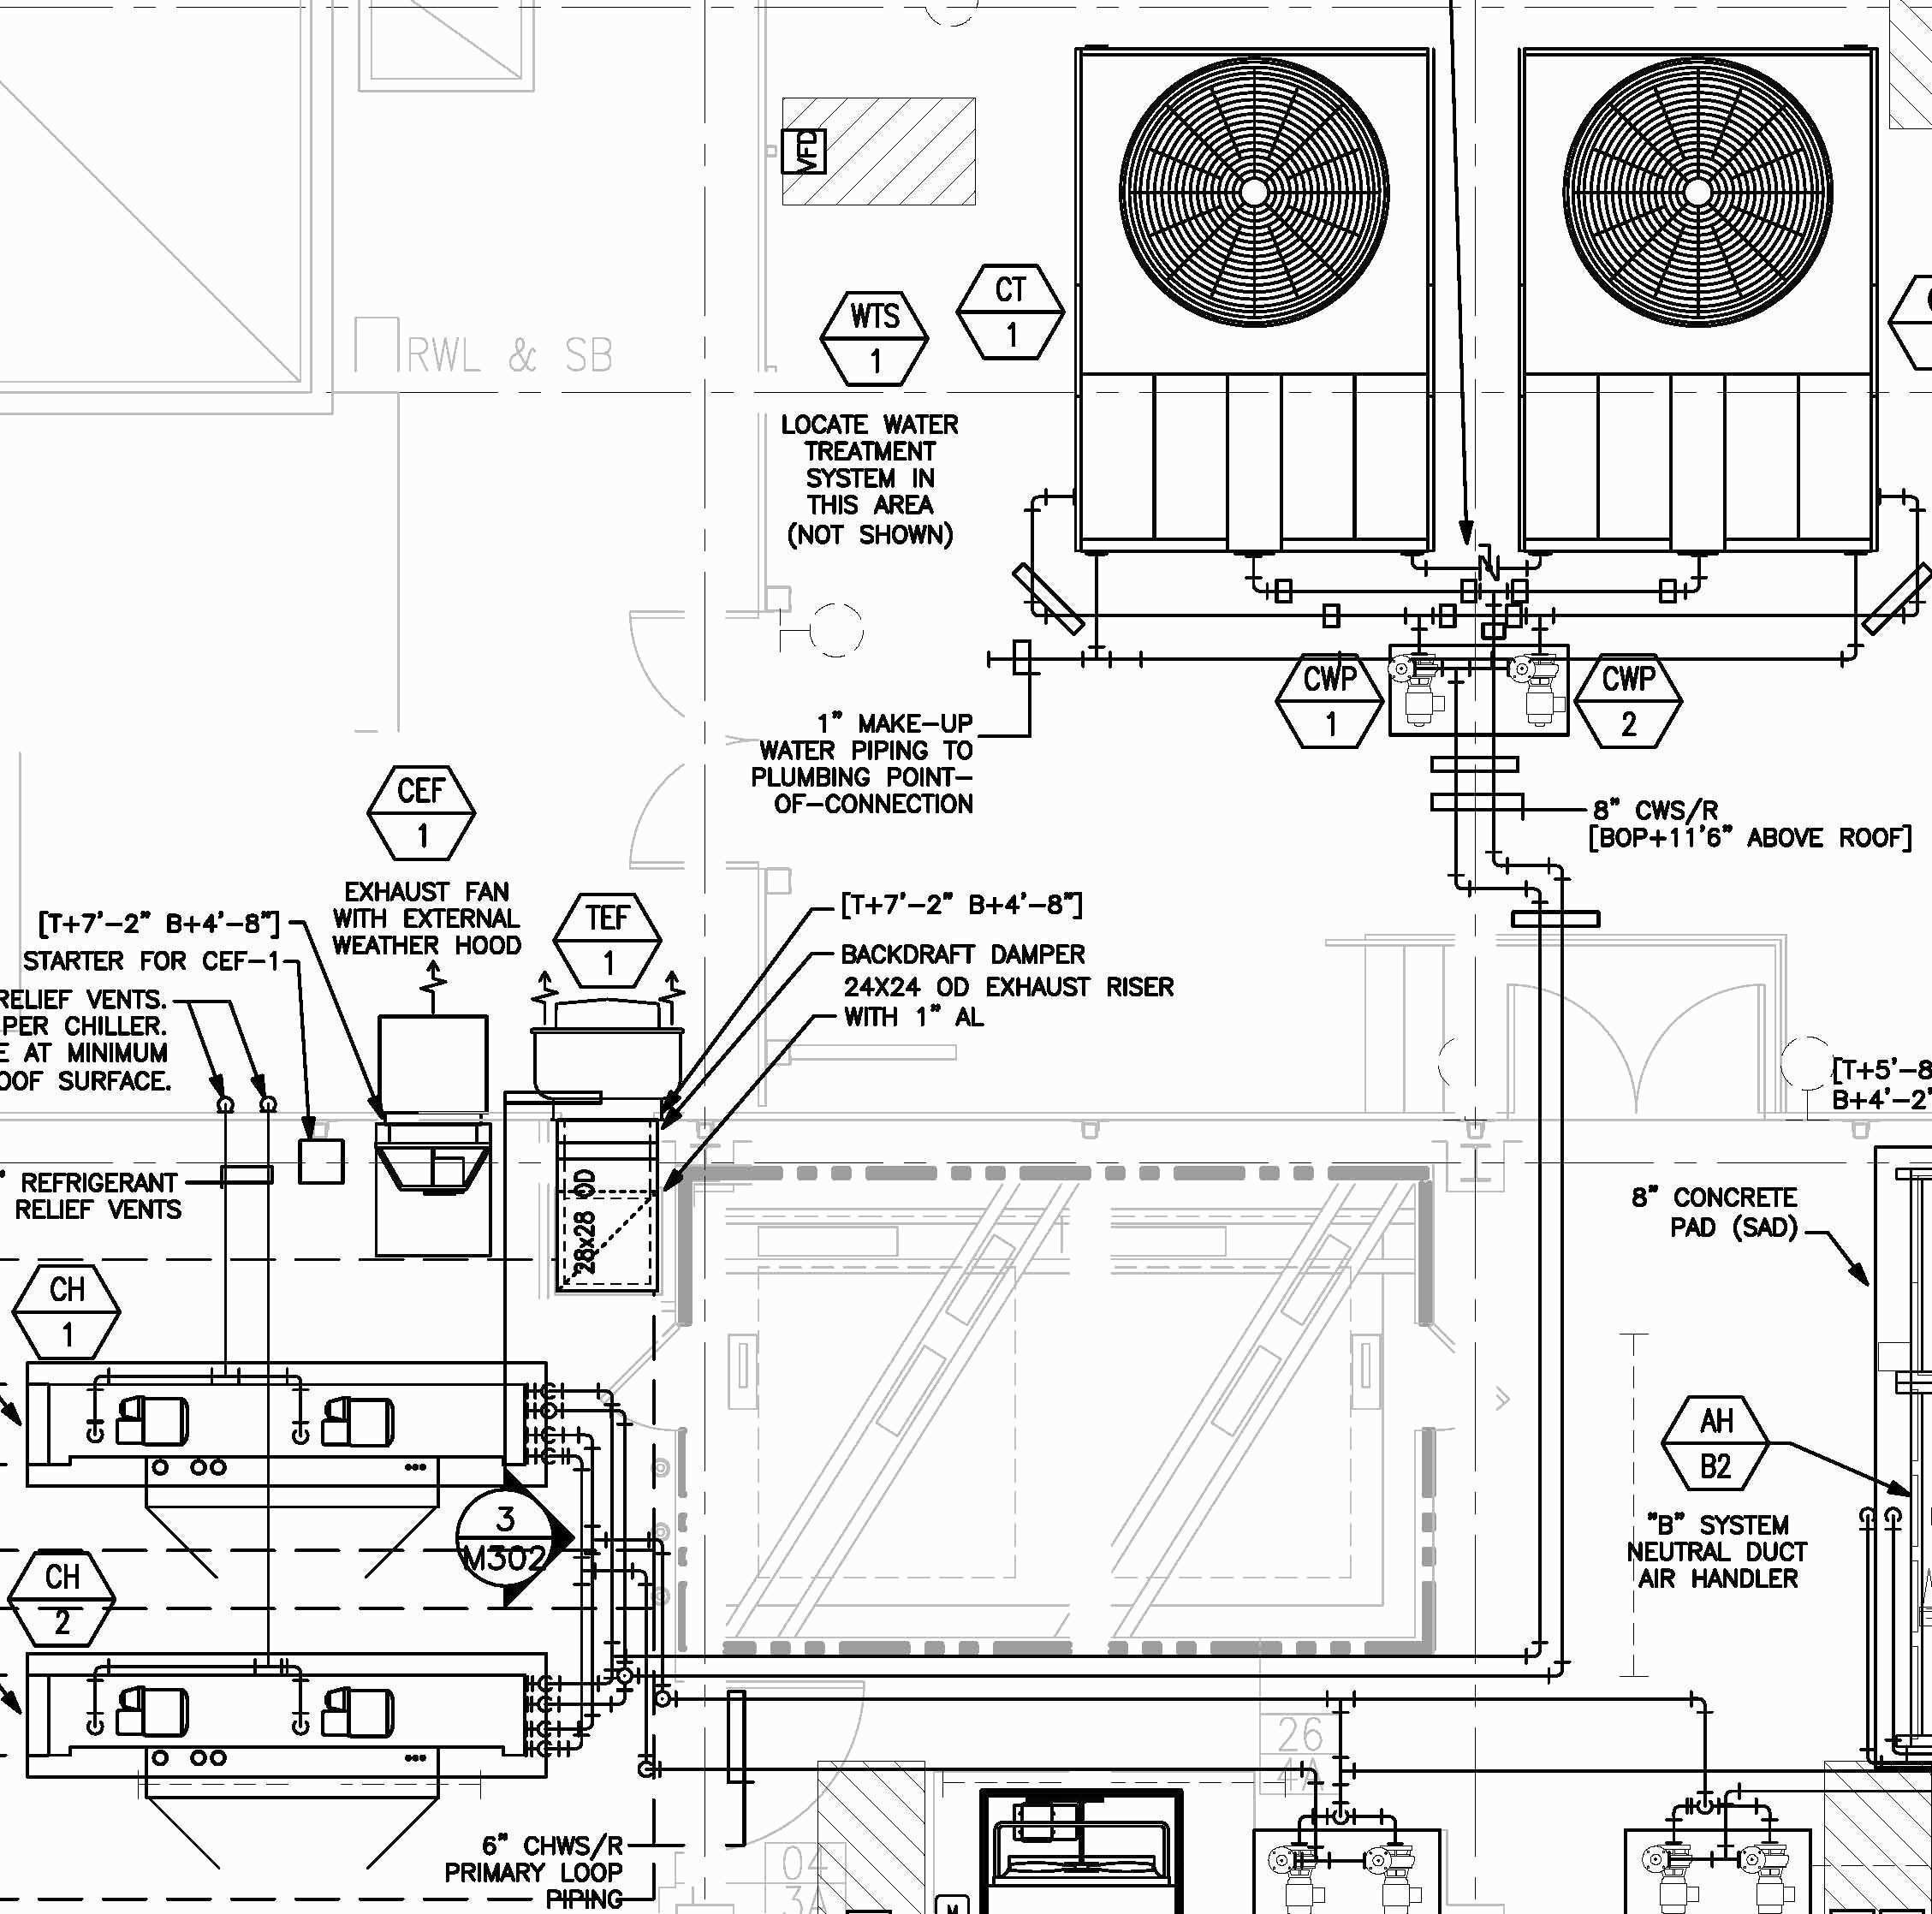 Well Pressure Switch Wiring Diagram Diagram for Square D Pressure Switch Water Pumps Electrical Diagrams Of Well Pressure Switch Wiring Diagram 3 Wire Oil Pressure Switch Wiring Diagram